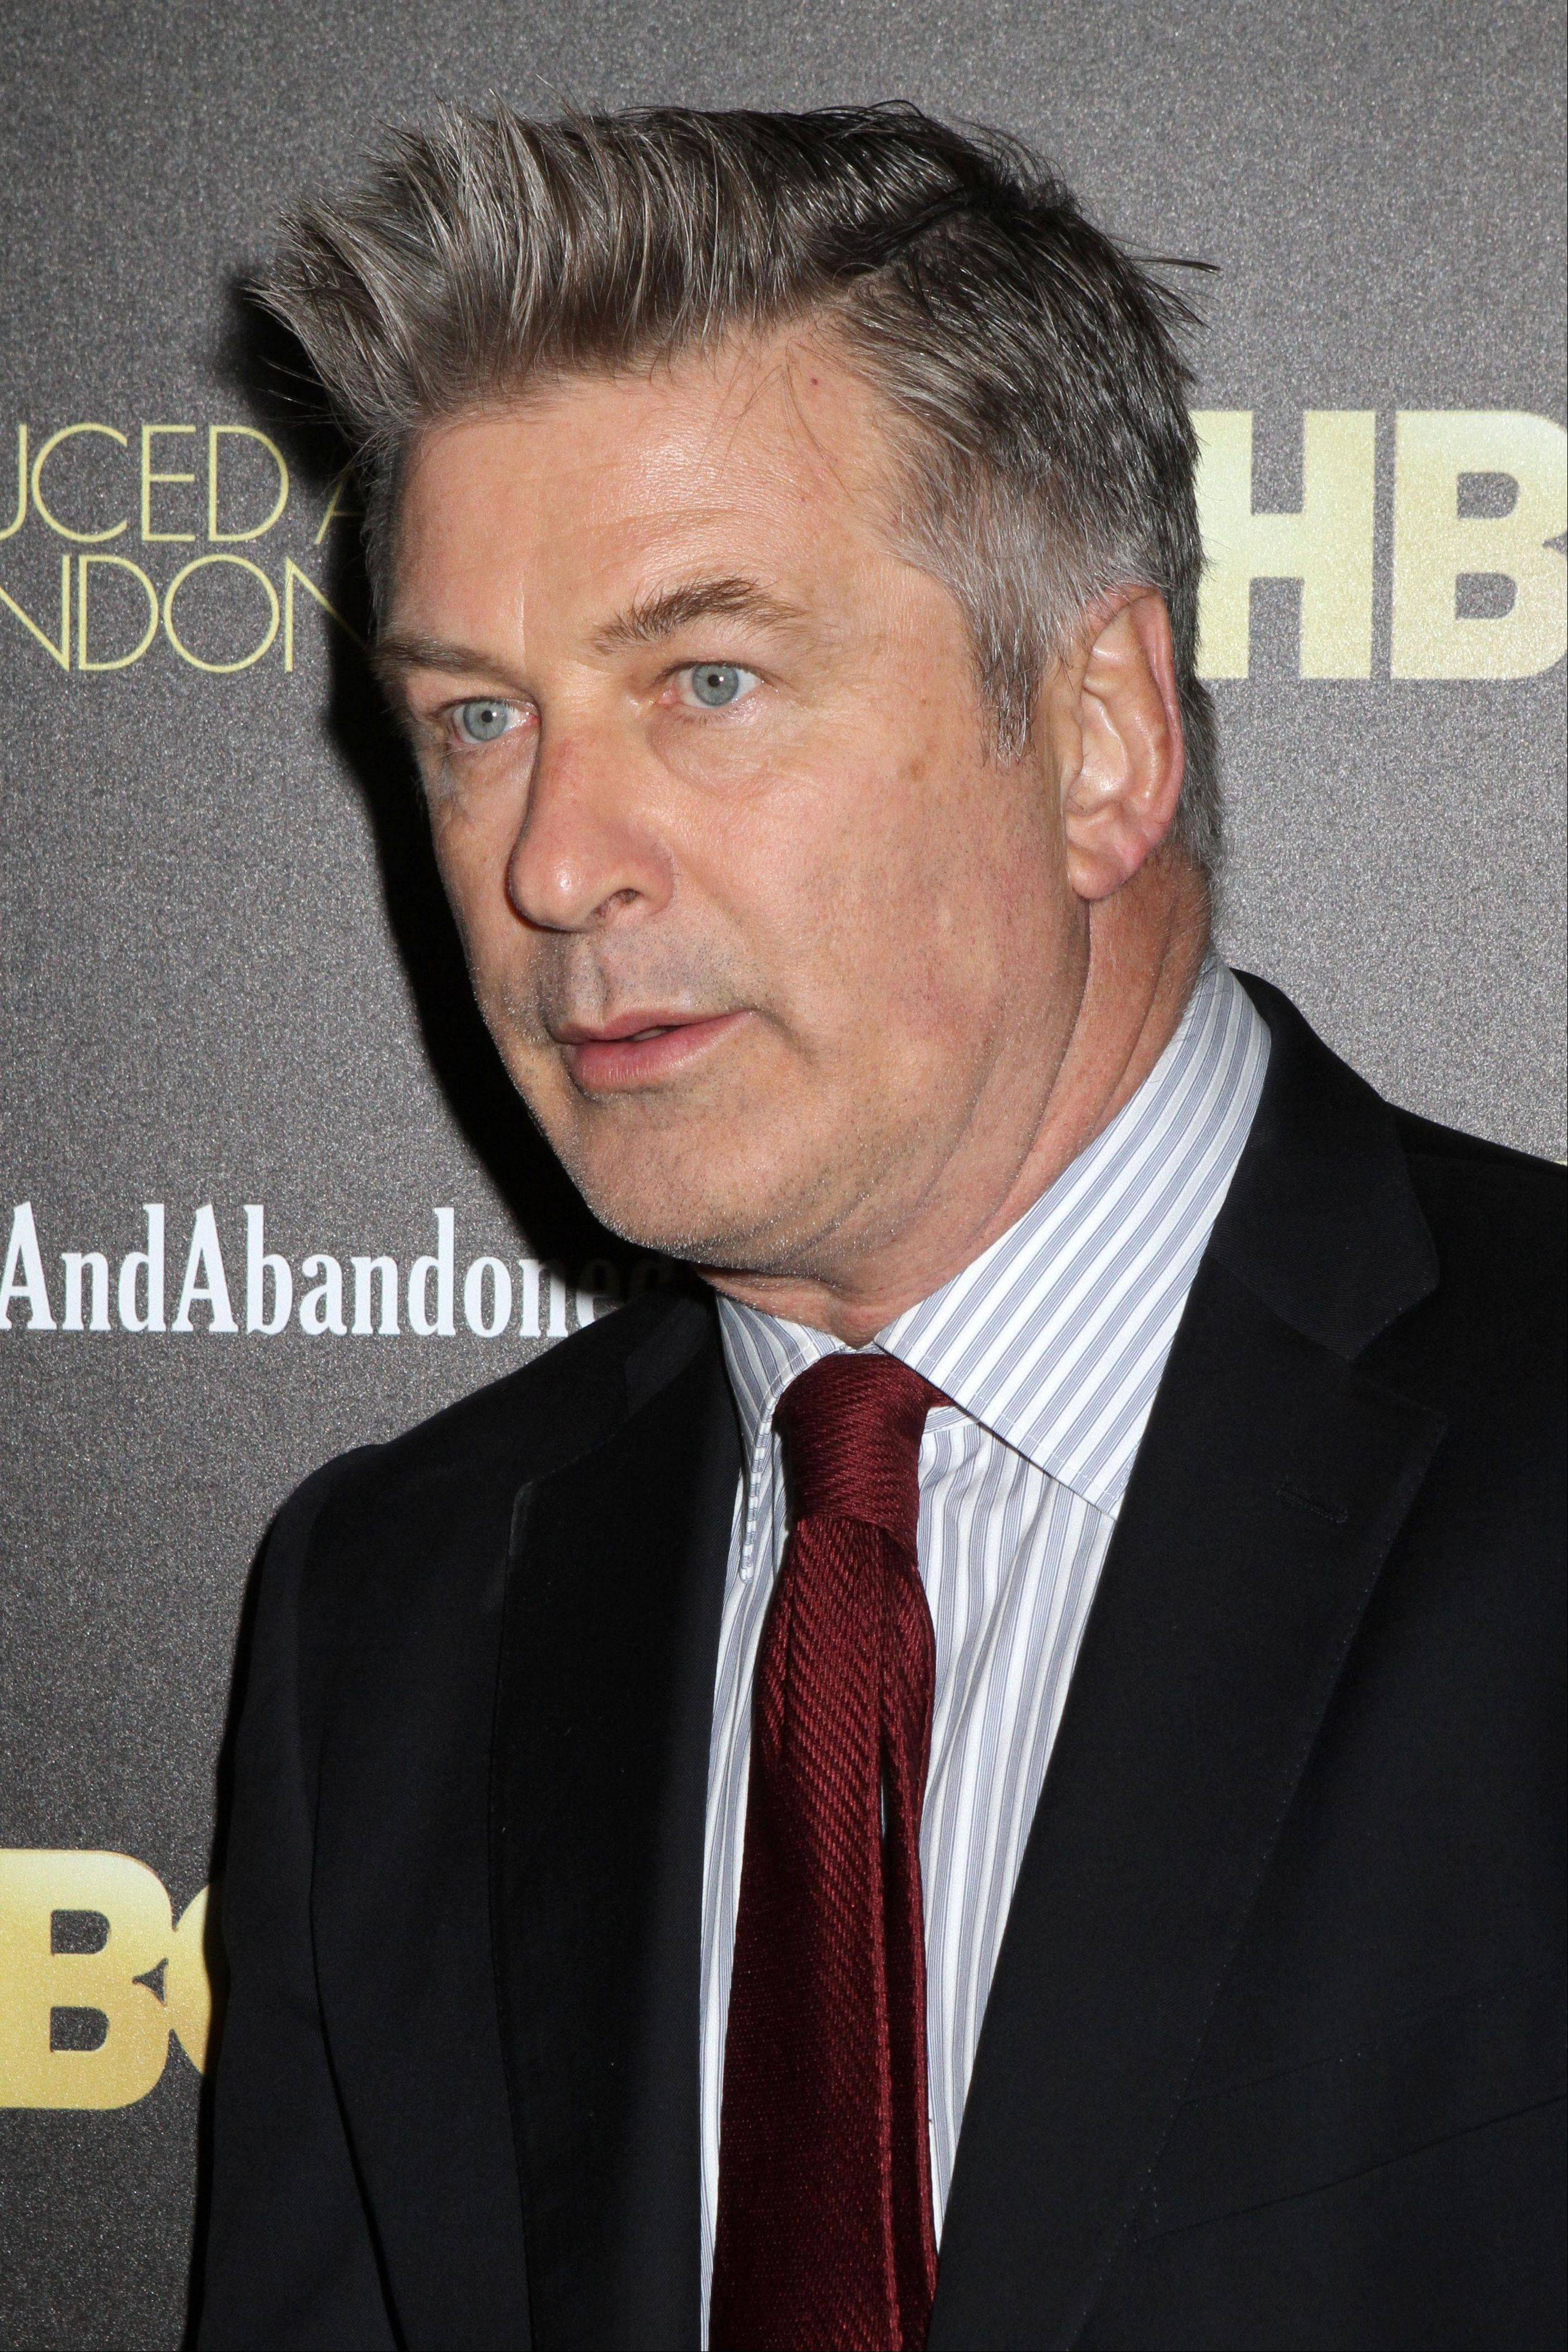 In this Oct. 24, 2013 file photo, producer and actor Alec Baldwin attends the HBO premiere of �Seduced and Abandoned� at The Time Warner Center in New York. On Friday, MSNBC suspended Baldwin for two weeks for inflammatory remarks he made to a reporter earlier in the week.